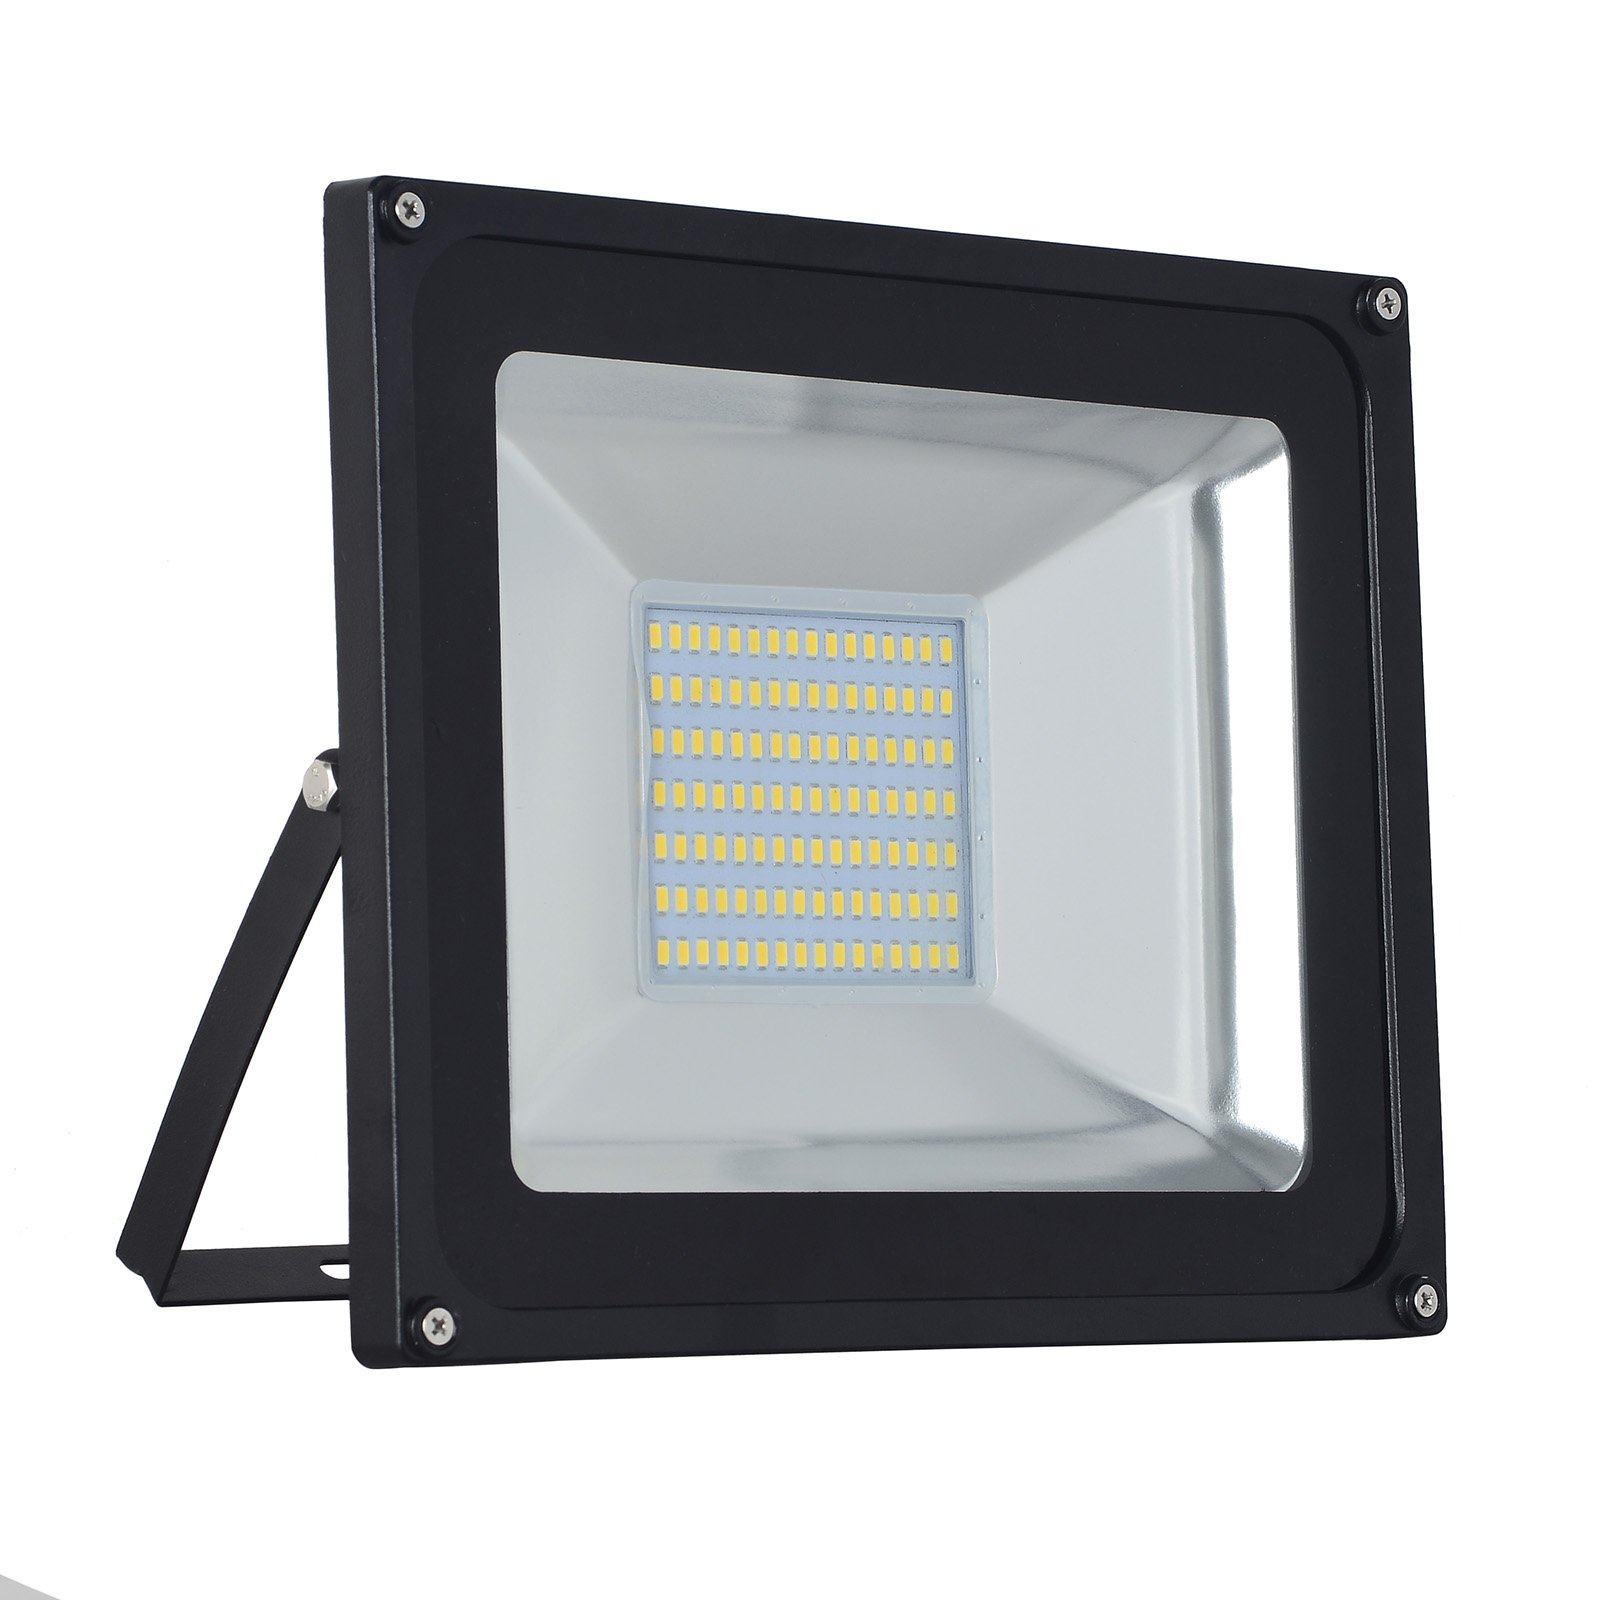 1-Pack 100W LED Floodlight,Low-energy Warm White Spotlight,IP65 Waterproof Outdoor&Indoor Security Flood Light Landscape Lamp